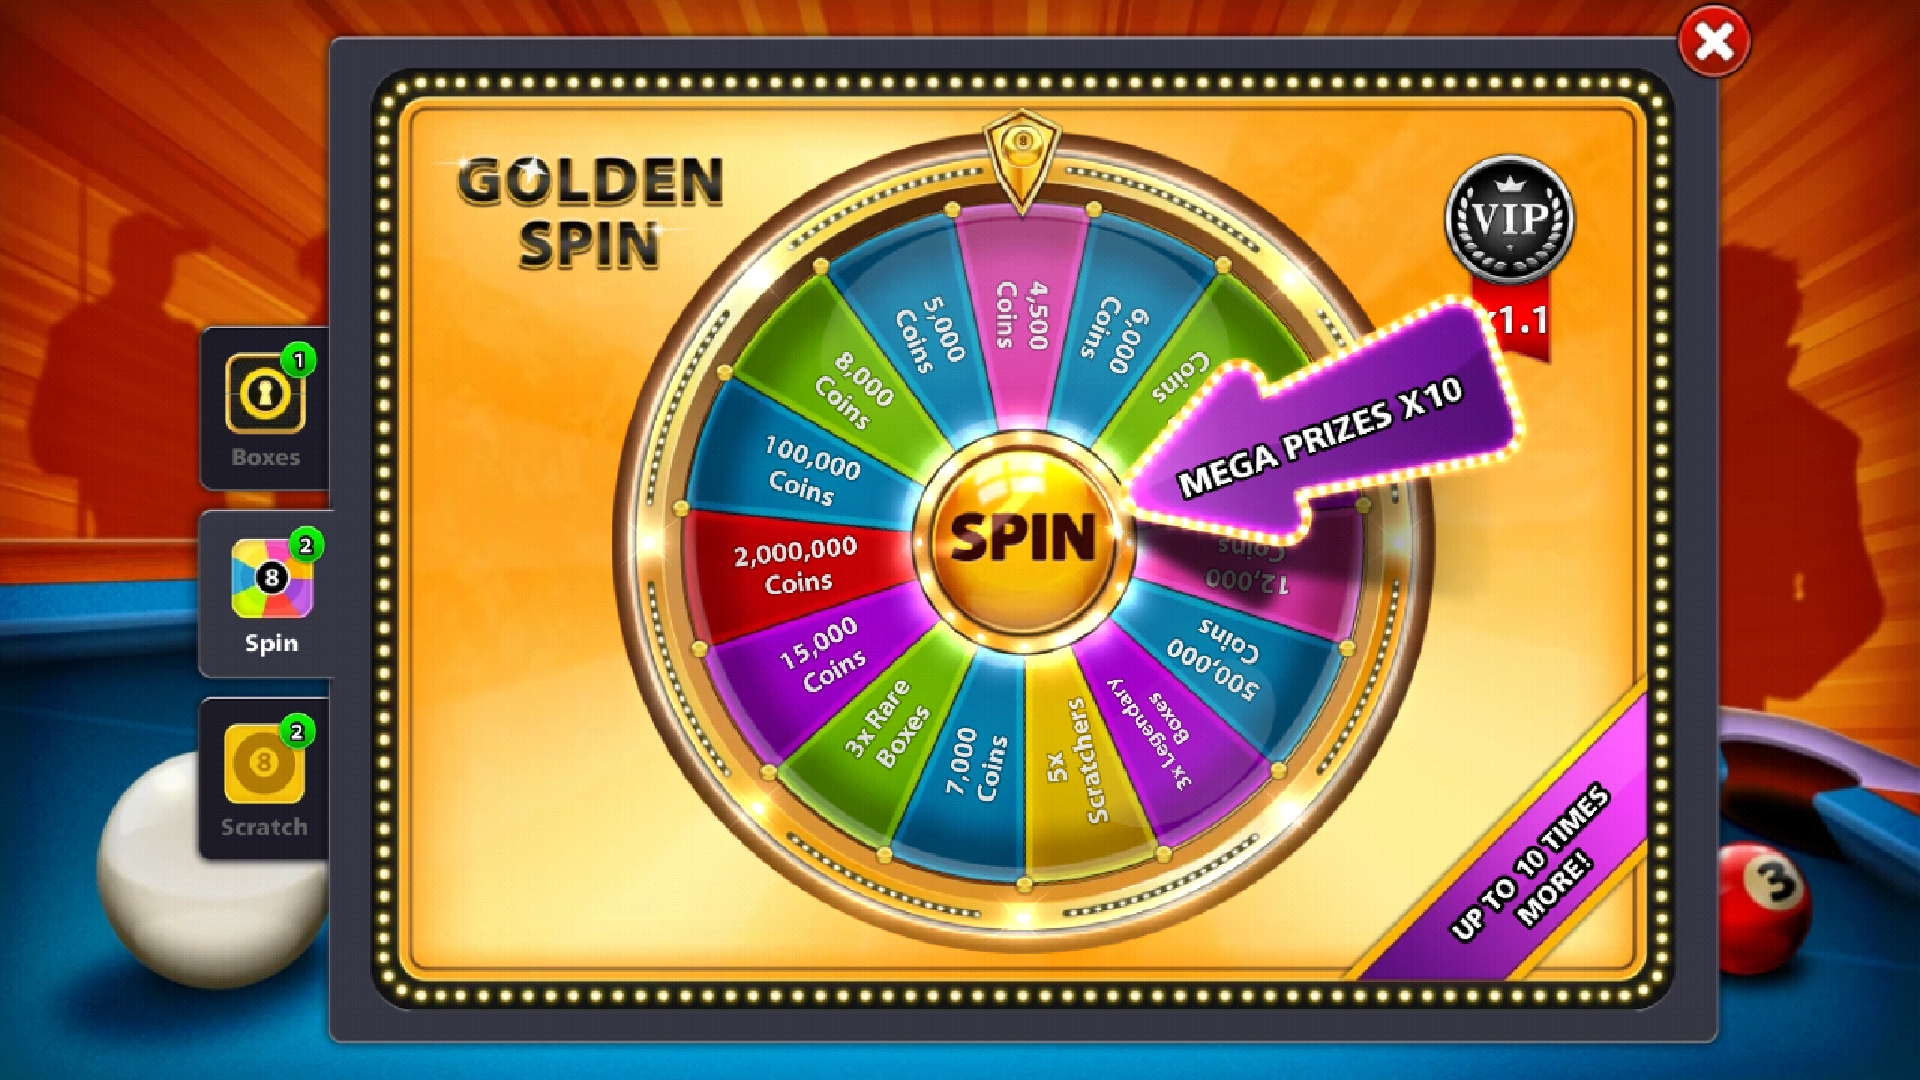 8 ball pool golden spin reward